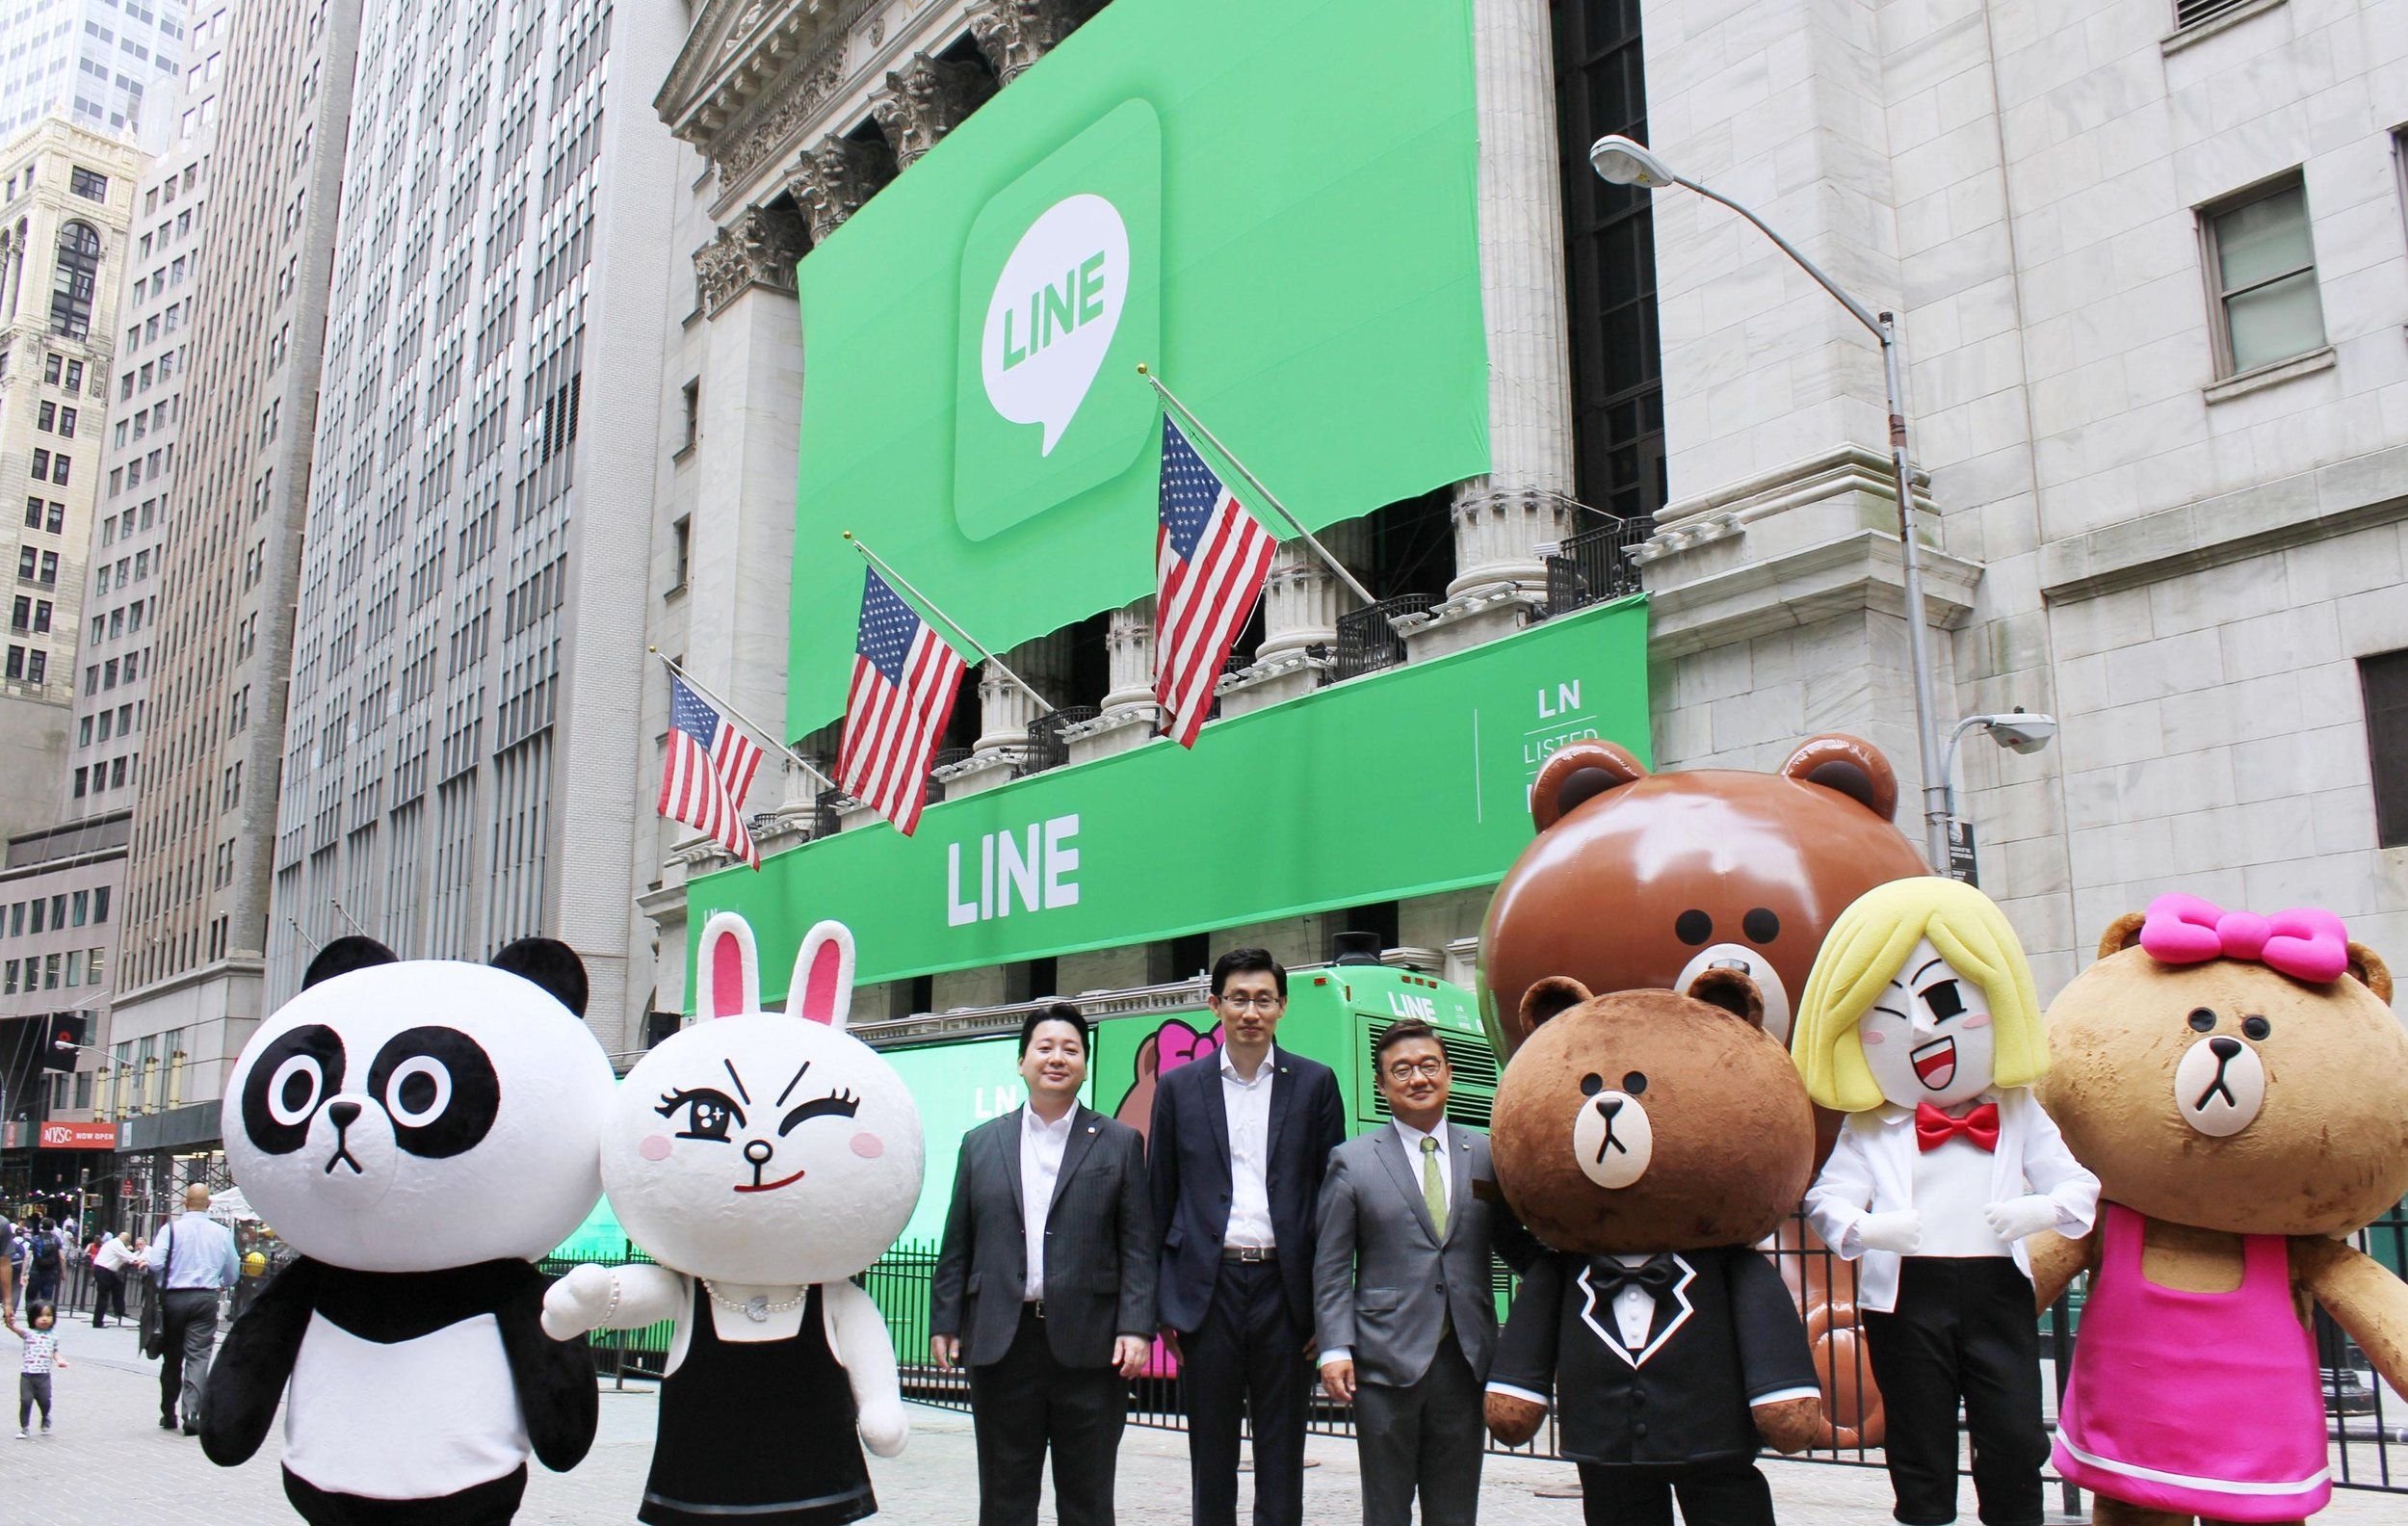 Line was the largest IPO of 2016. Image credit - japantimes.co.jp